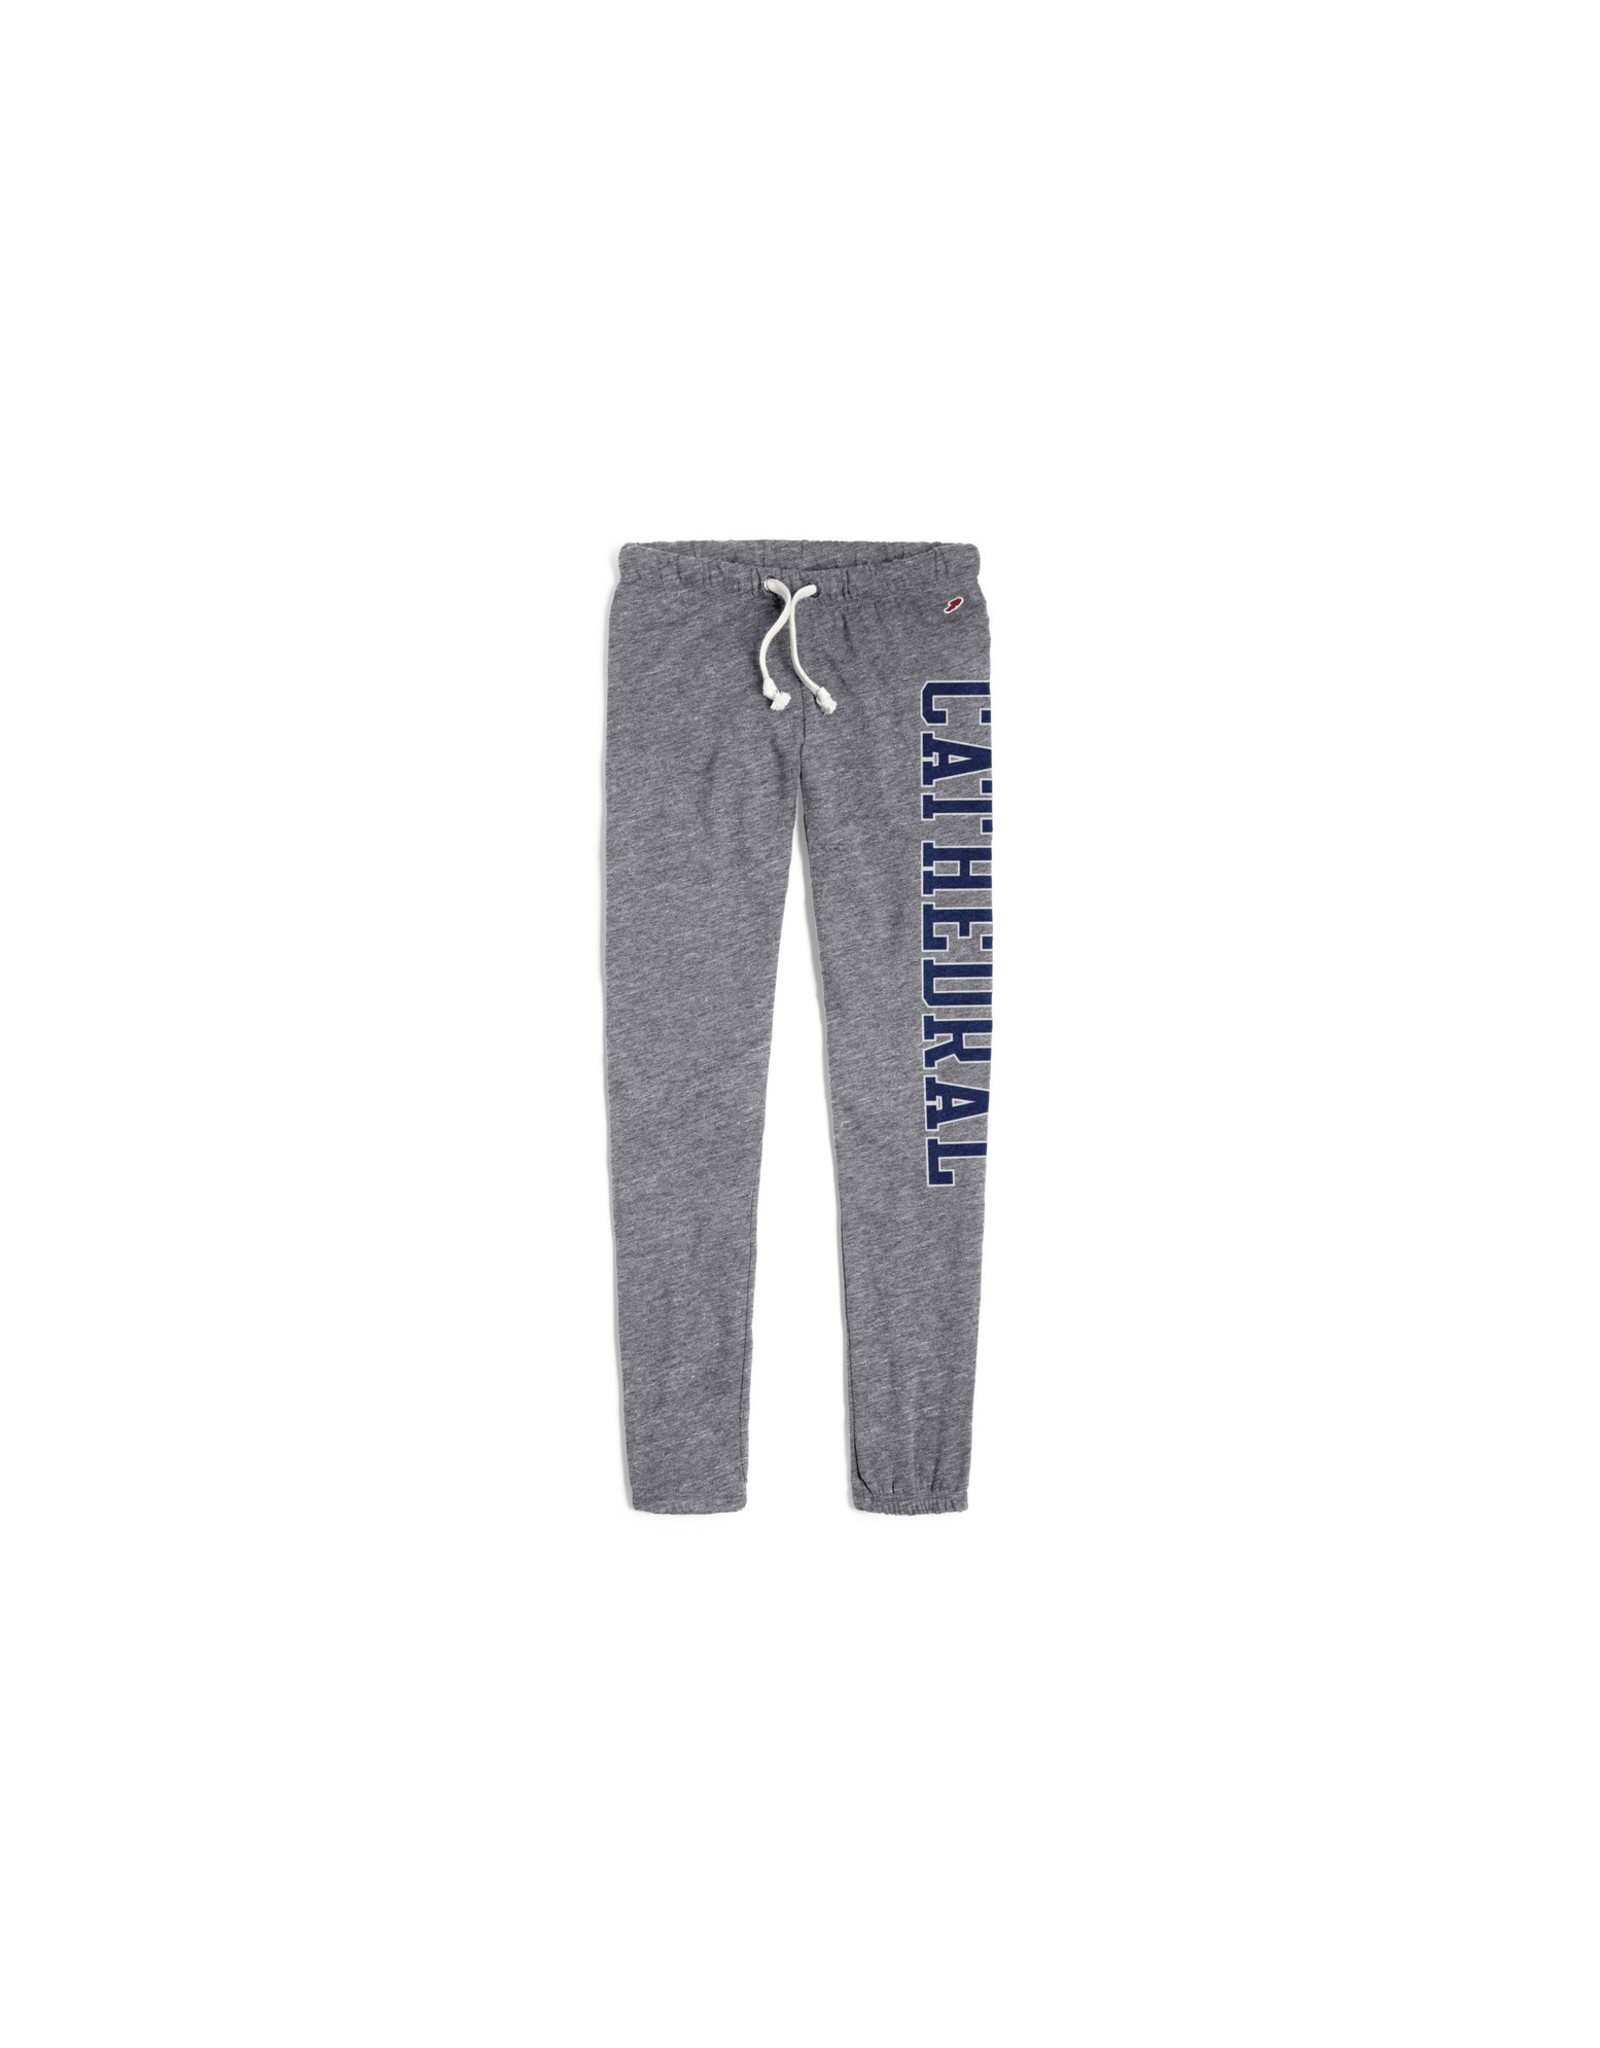 SWEATS-LEAGUE